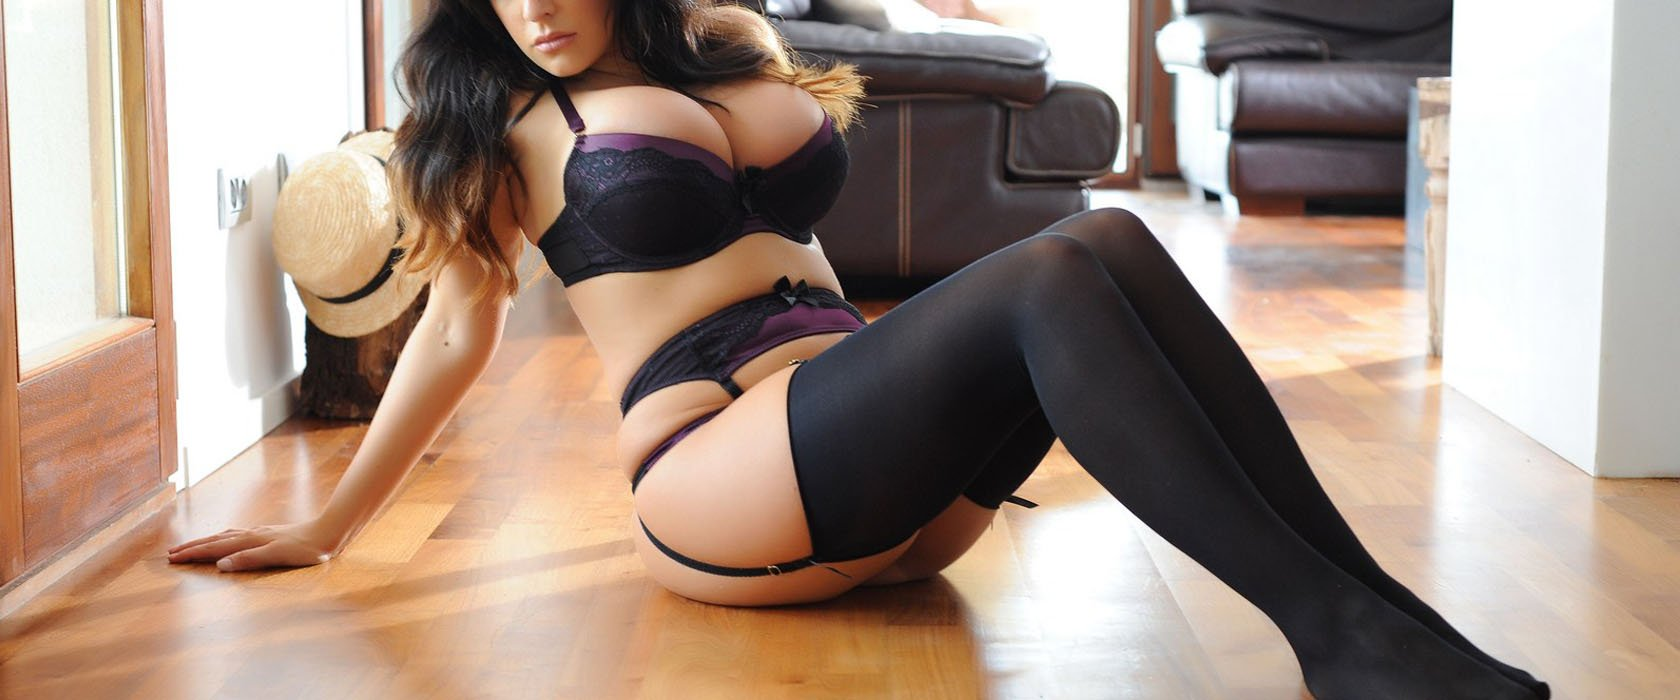 Begumpet escorts